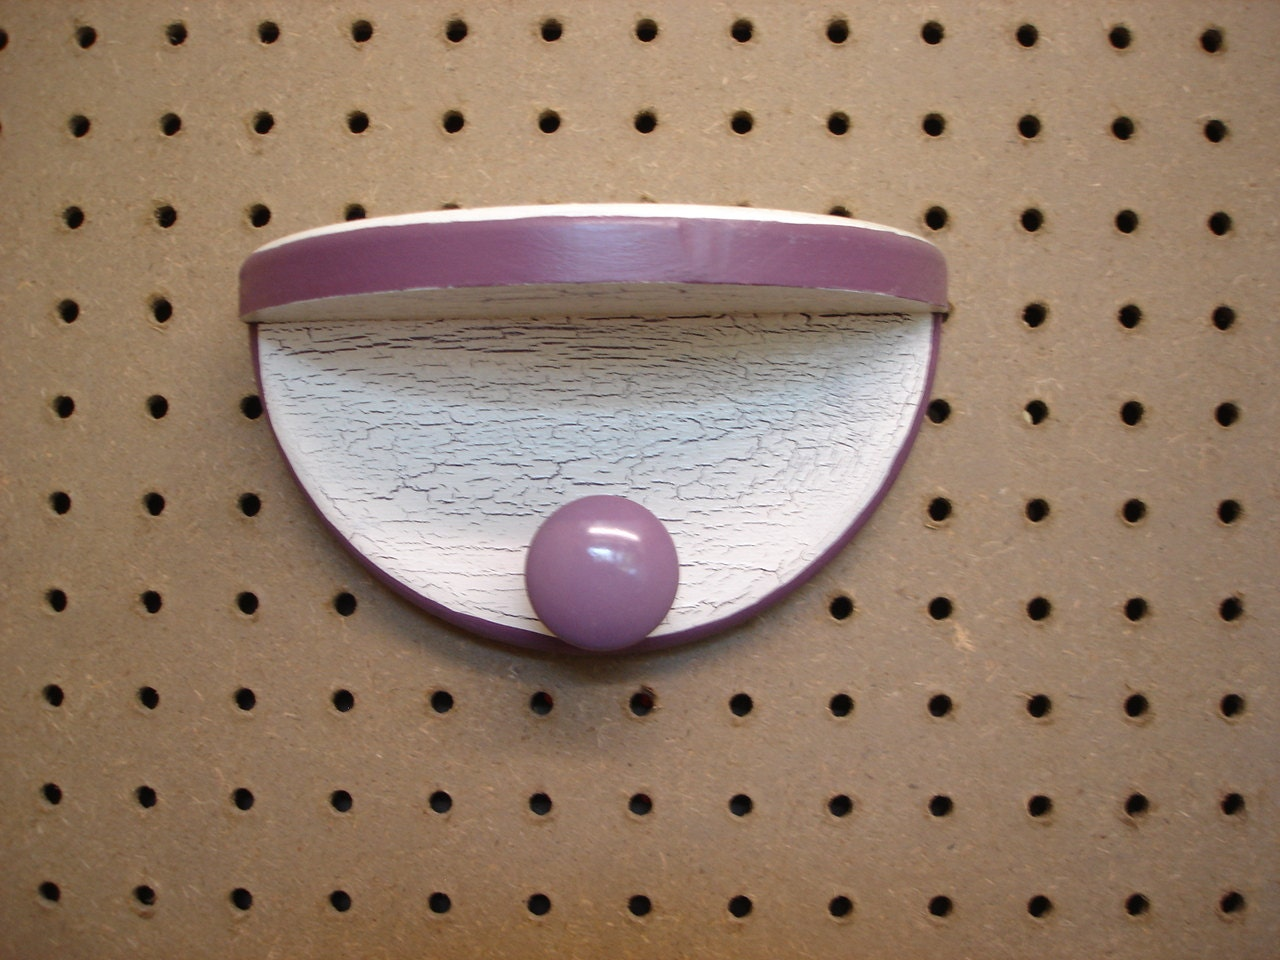 Little,Anywhere,Plum,Shelf,in,Cottage,Chic,Home,Decor,Housewares,Home_Decor,shelf,home_decor,wall_decor,wall_shelf,living_room_decor,kitchen_decor,kids_room,for_your_home,wooden_shelf,wood_shelf,painted_decor,small_shelf,plum,wood,ceramic,paint